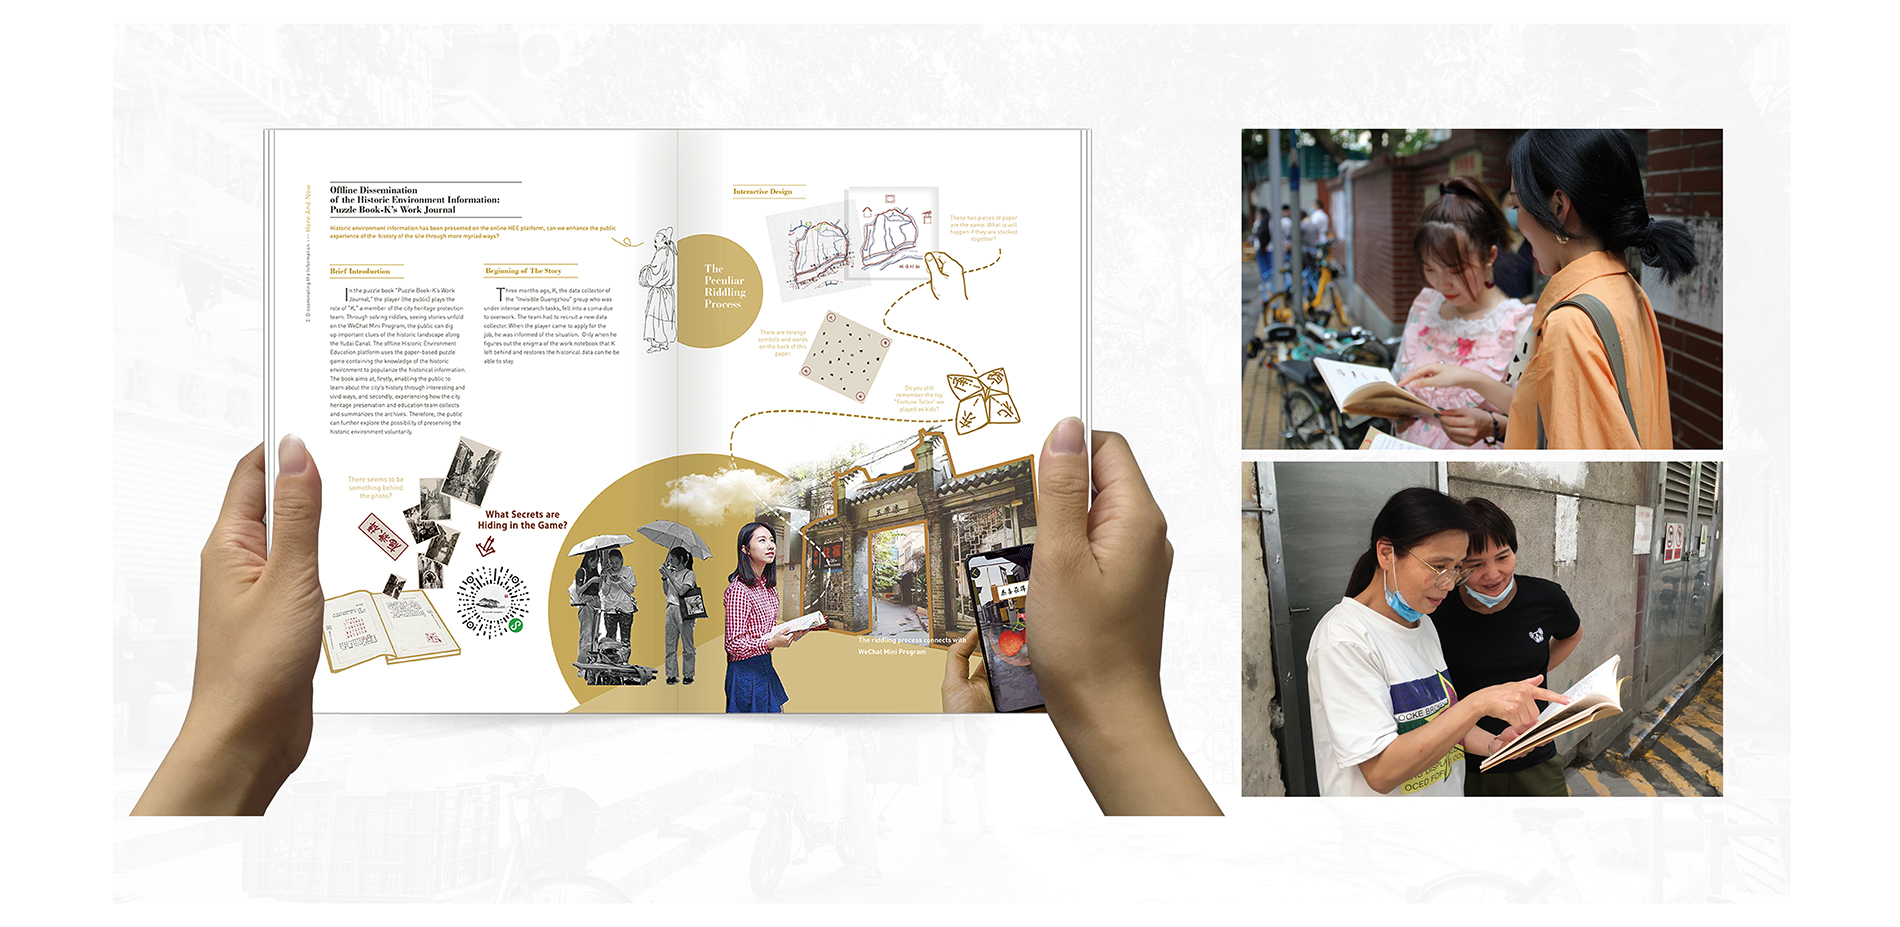 """The Design of """"Puzzle Book---K's Work Journal"""""""